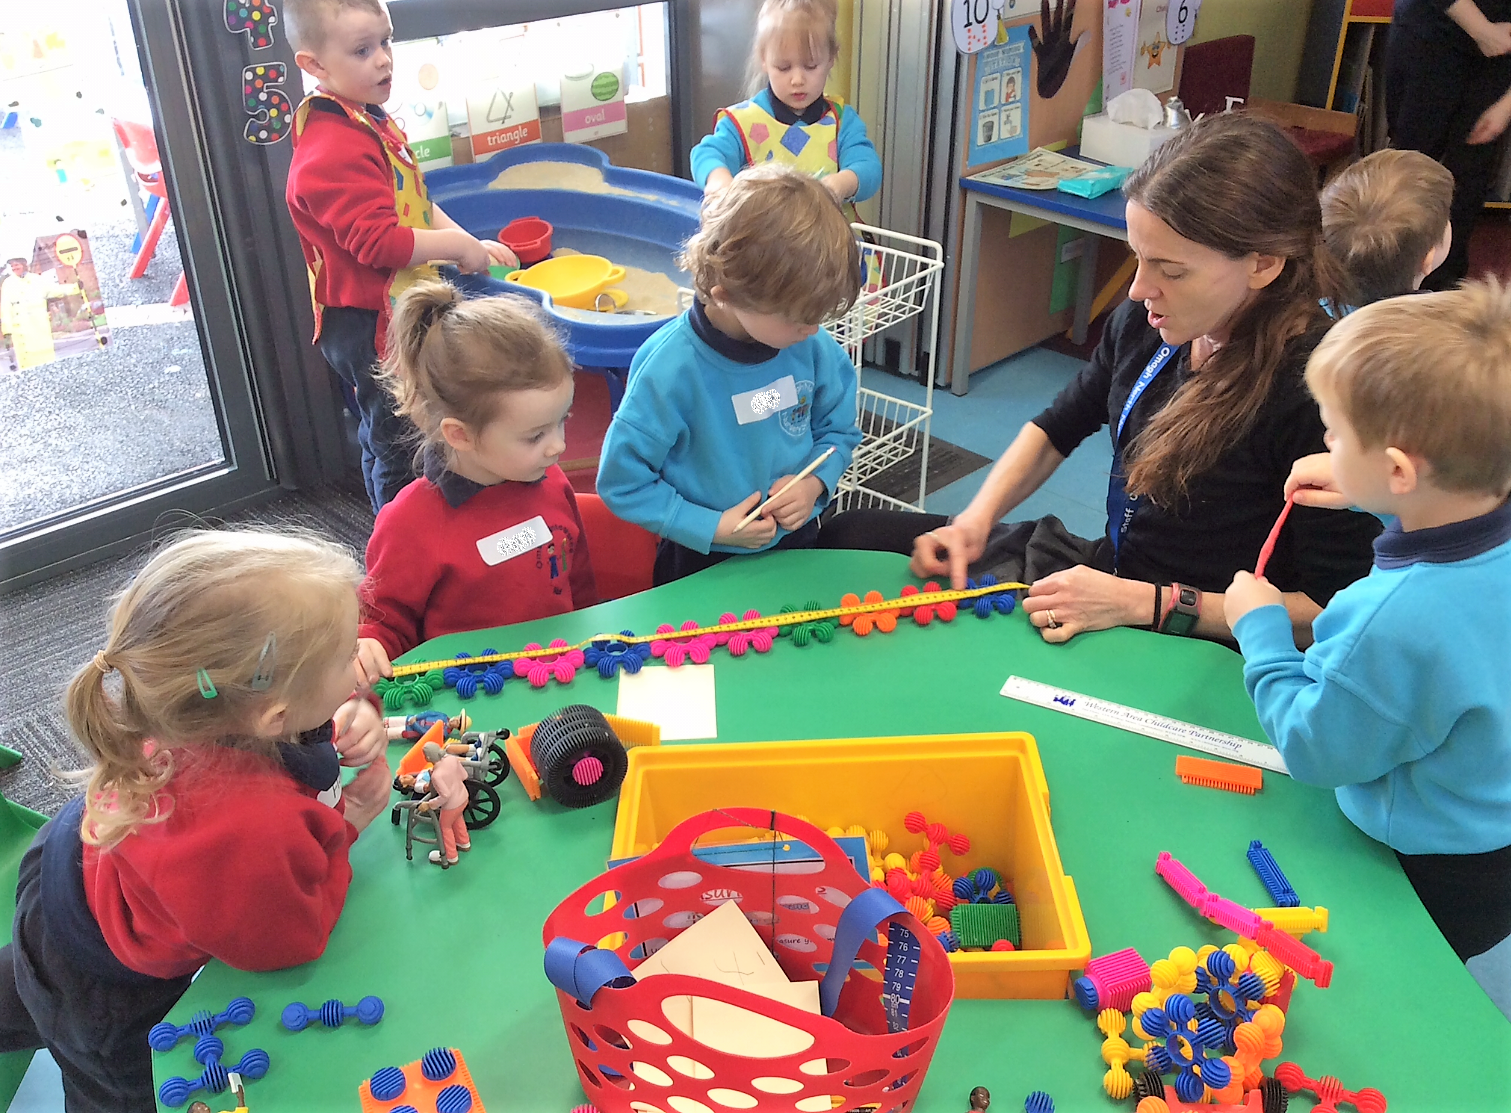 Omagh Integrated Nursery, Omagh North Nursery, and Christ the King Nursery—a variety of play and craft activities that supported the children's development as well as promoting the development of friendships. ©2020 Early Years.